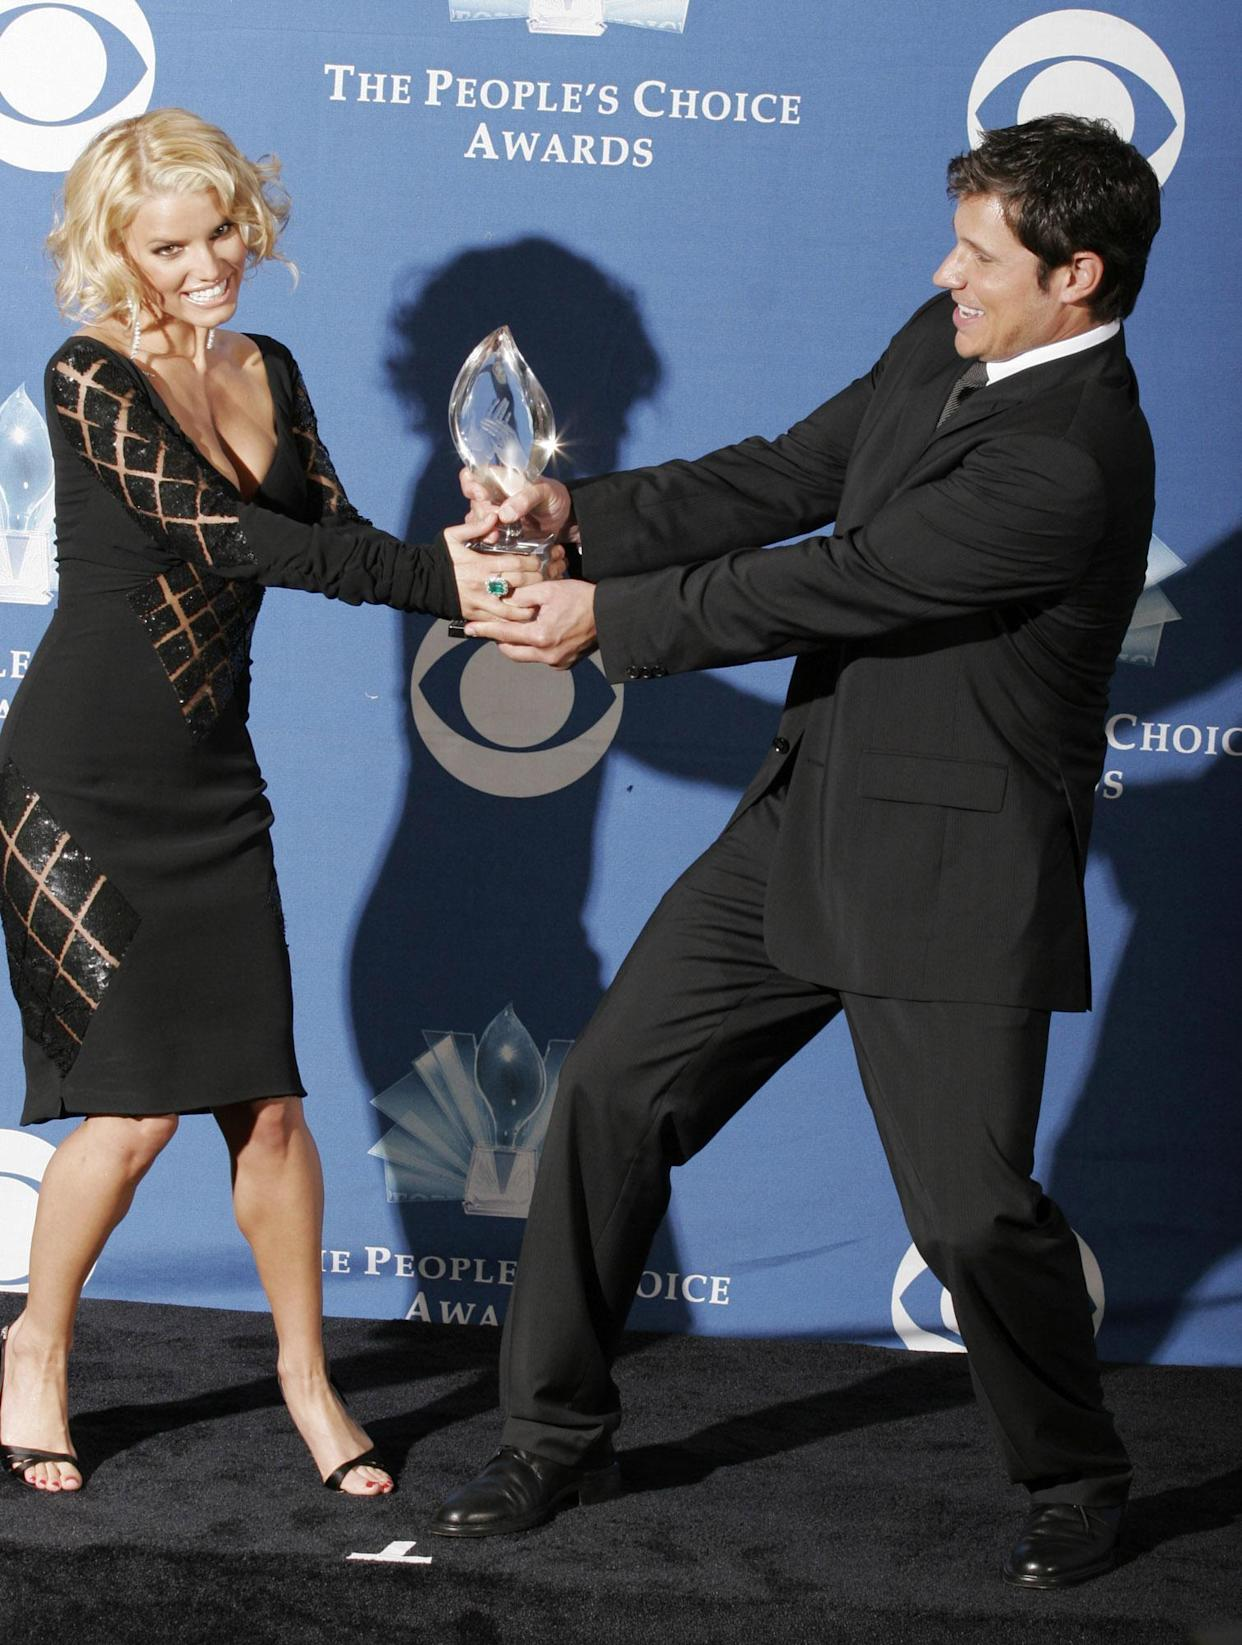 Jessica Simpson and her husband Nick Lachey have a playfight over their Favorite Reality-Based Program award for 'Newlyweds' at the 2005 People's Choice Awards. (Photo: Francis Specker - PA Images/PA Images via Getty Images)